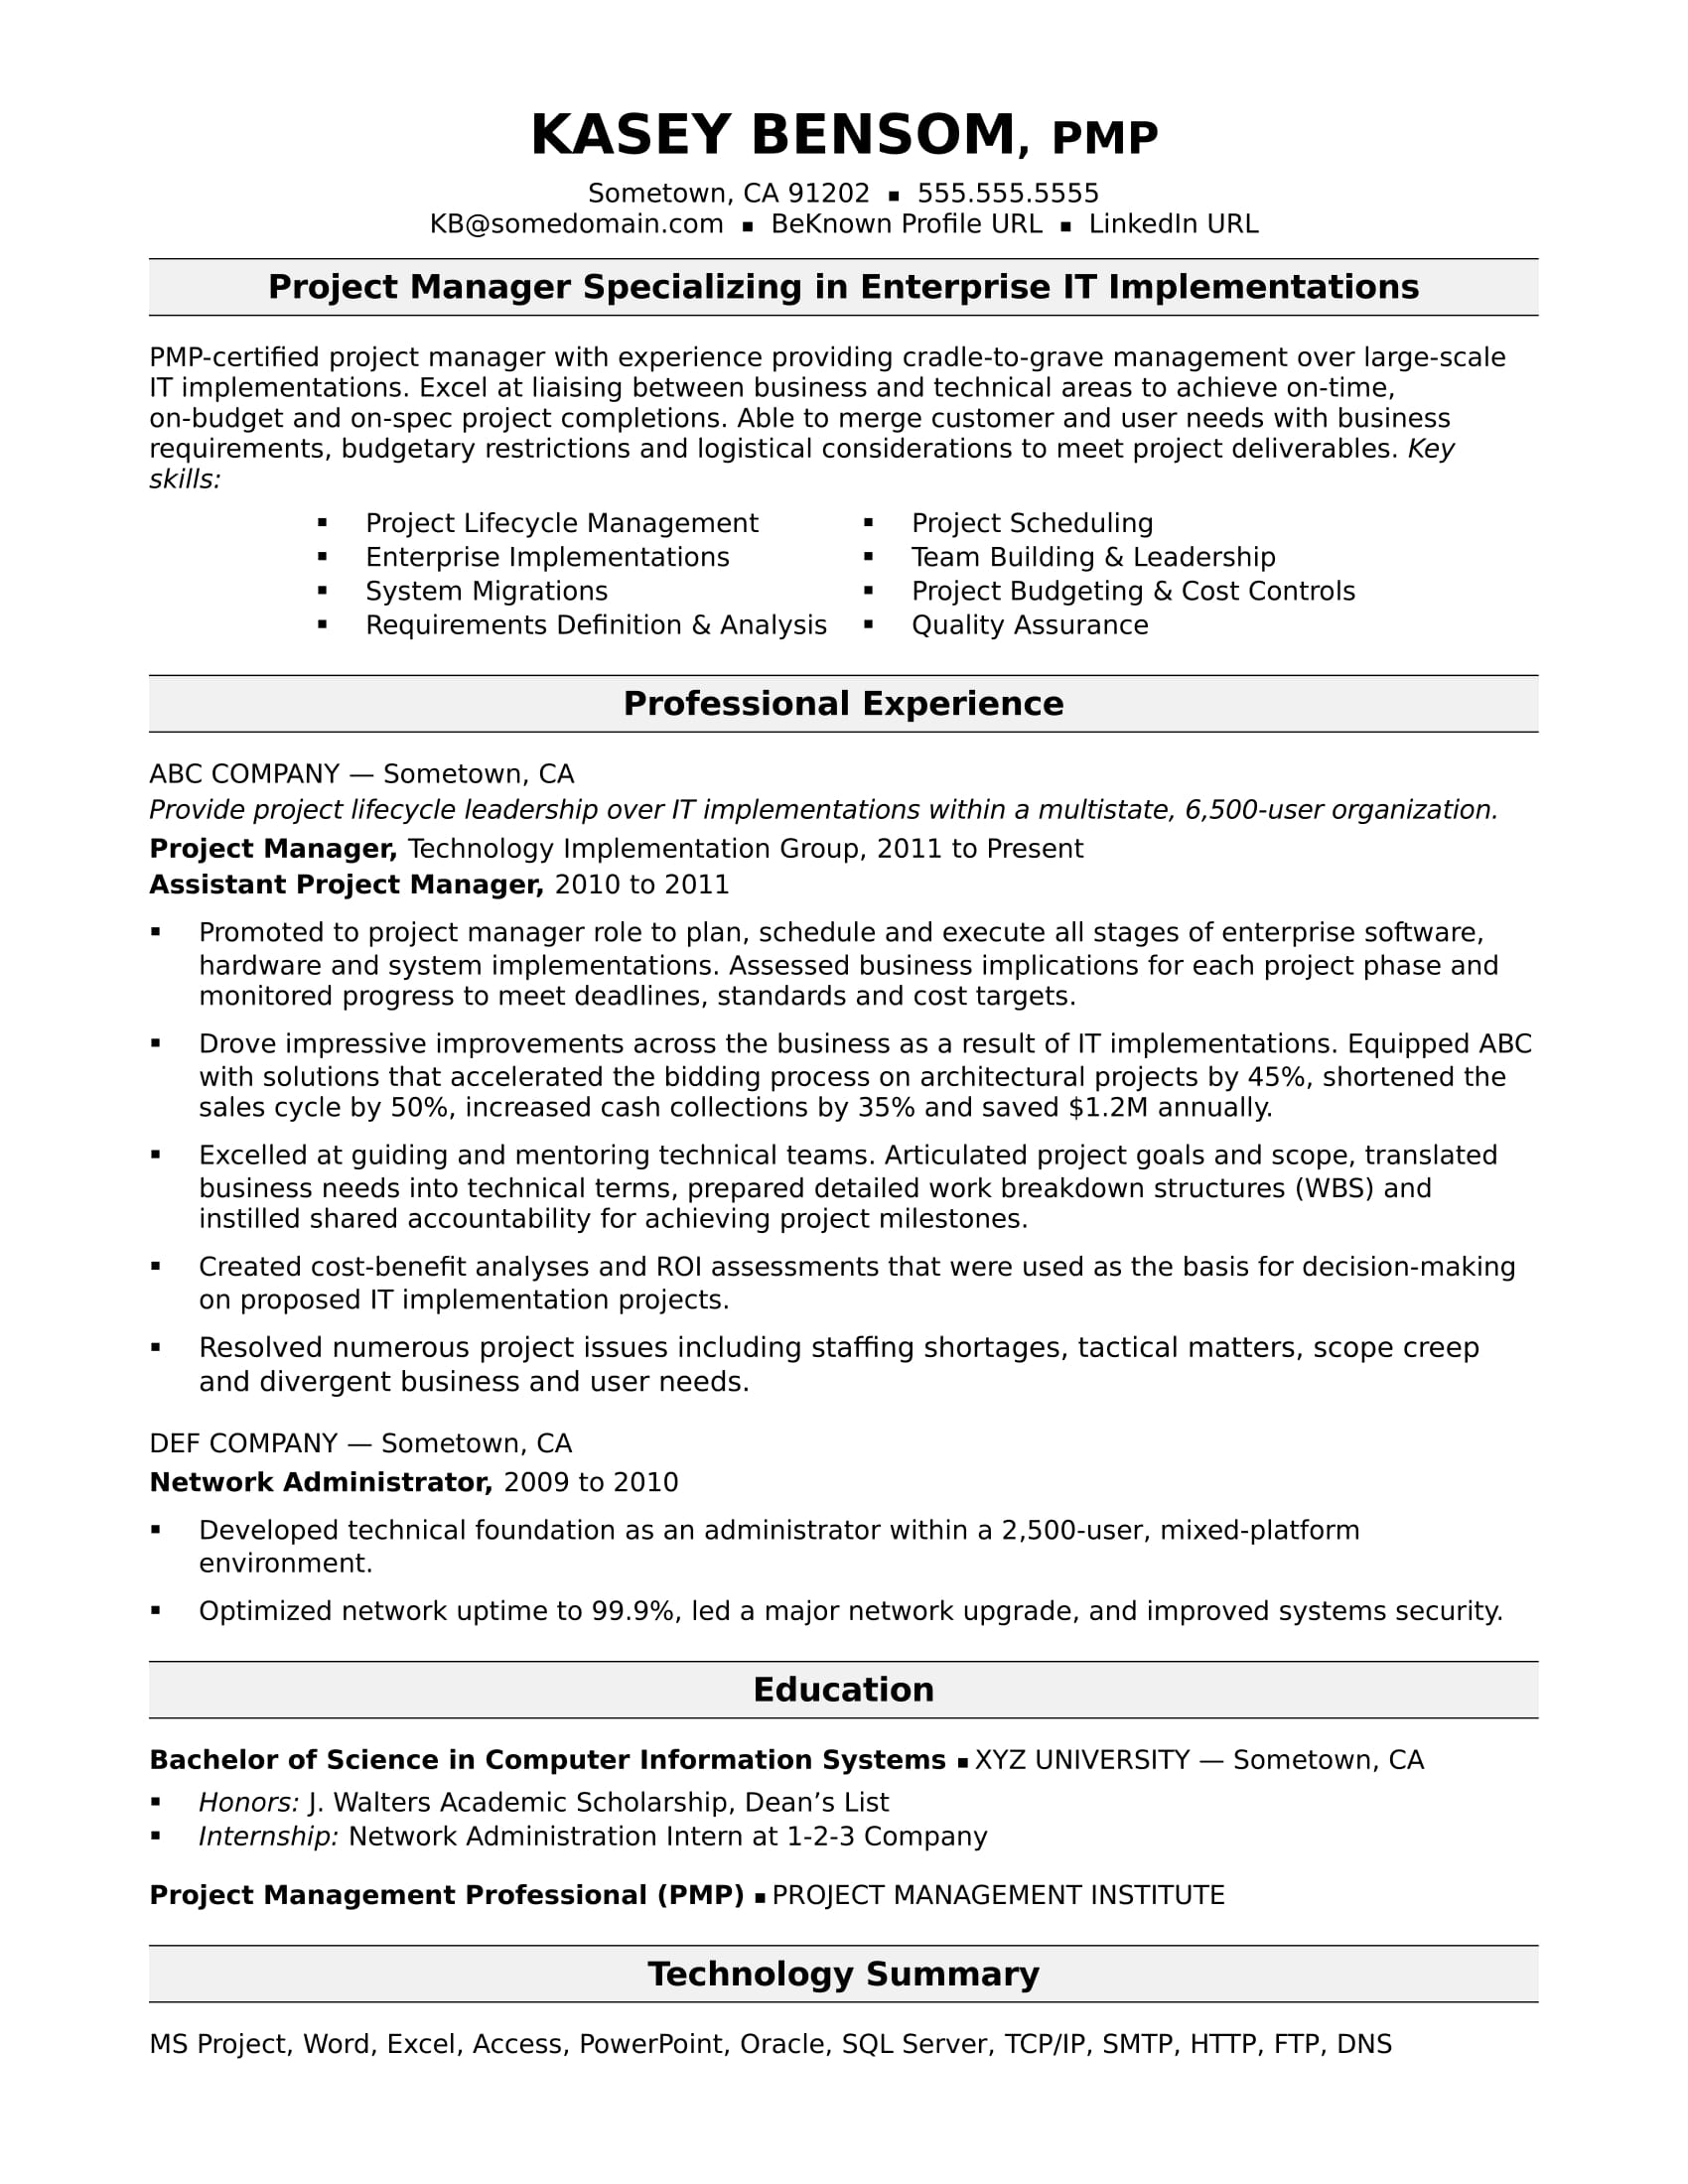 sample resume for midlevel it project manager monster technical program examples indeed Resume Technical Program Manager Resume Examples